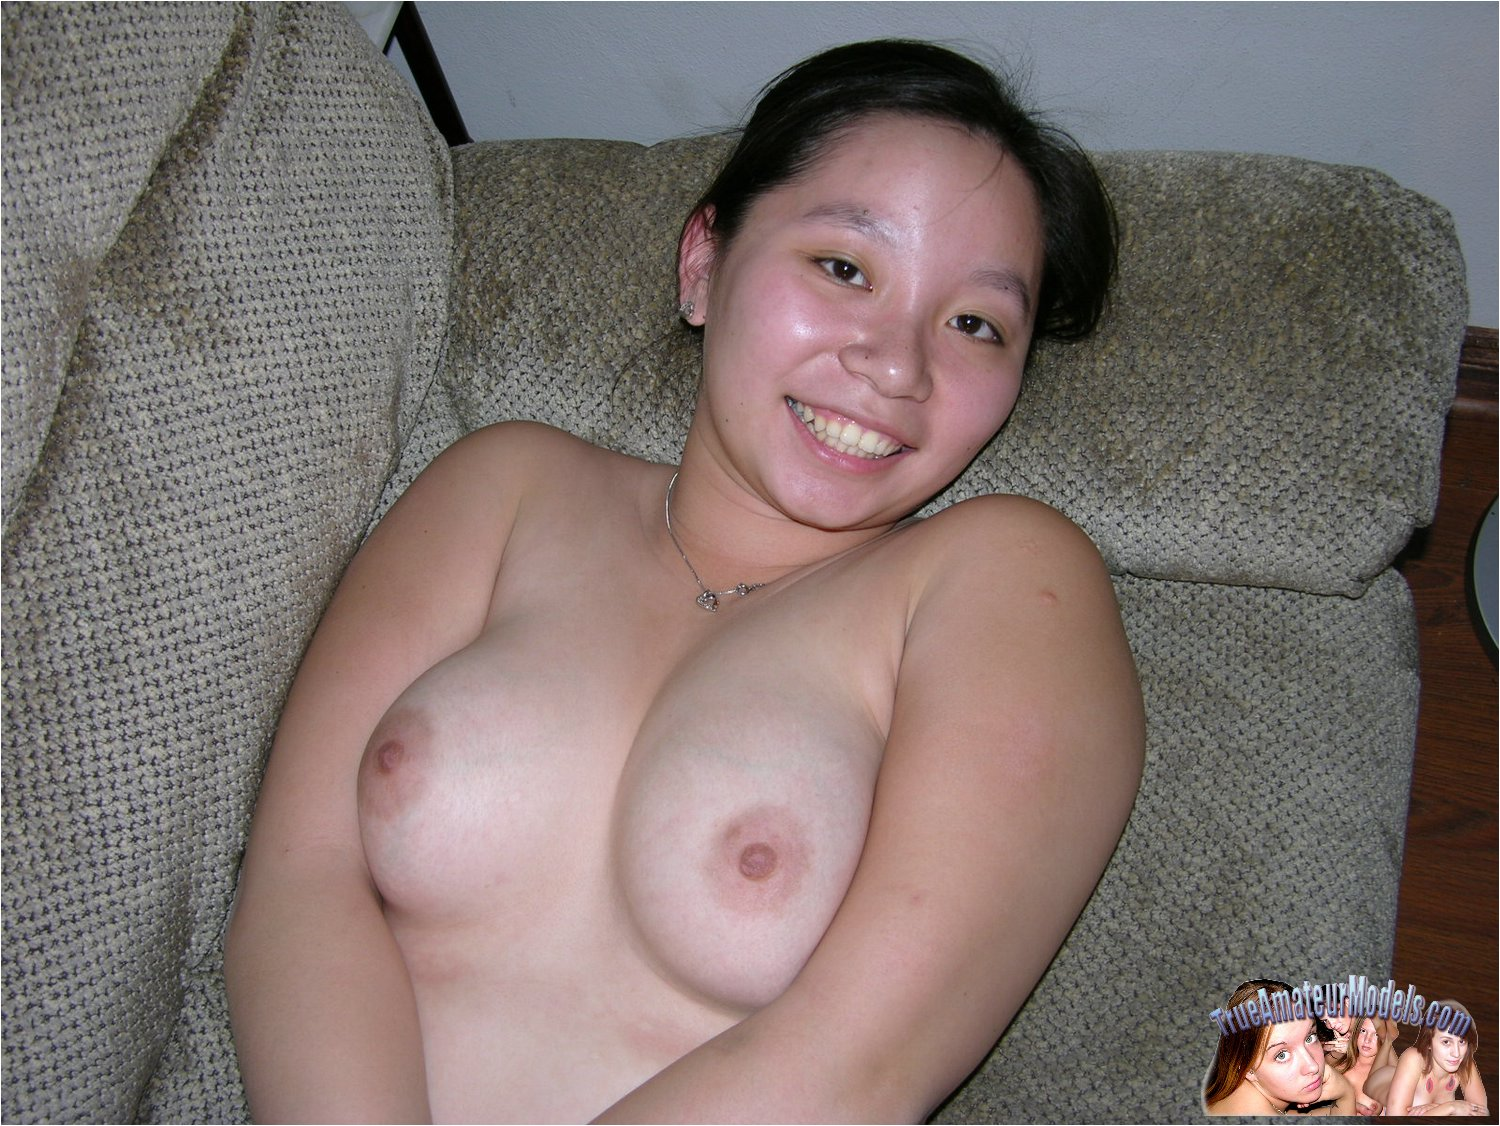 Excellent shaved asian spreaders that